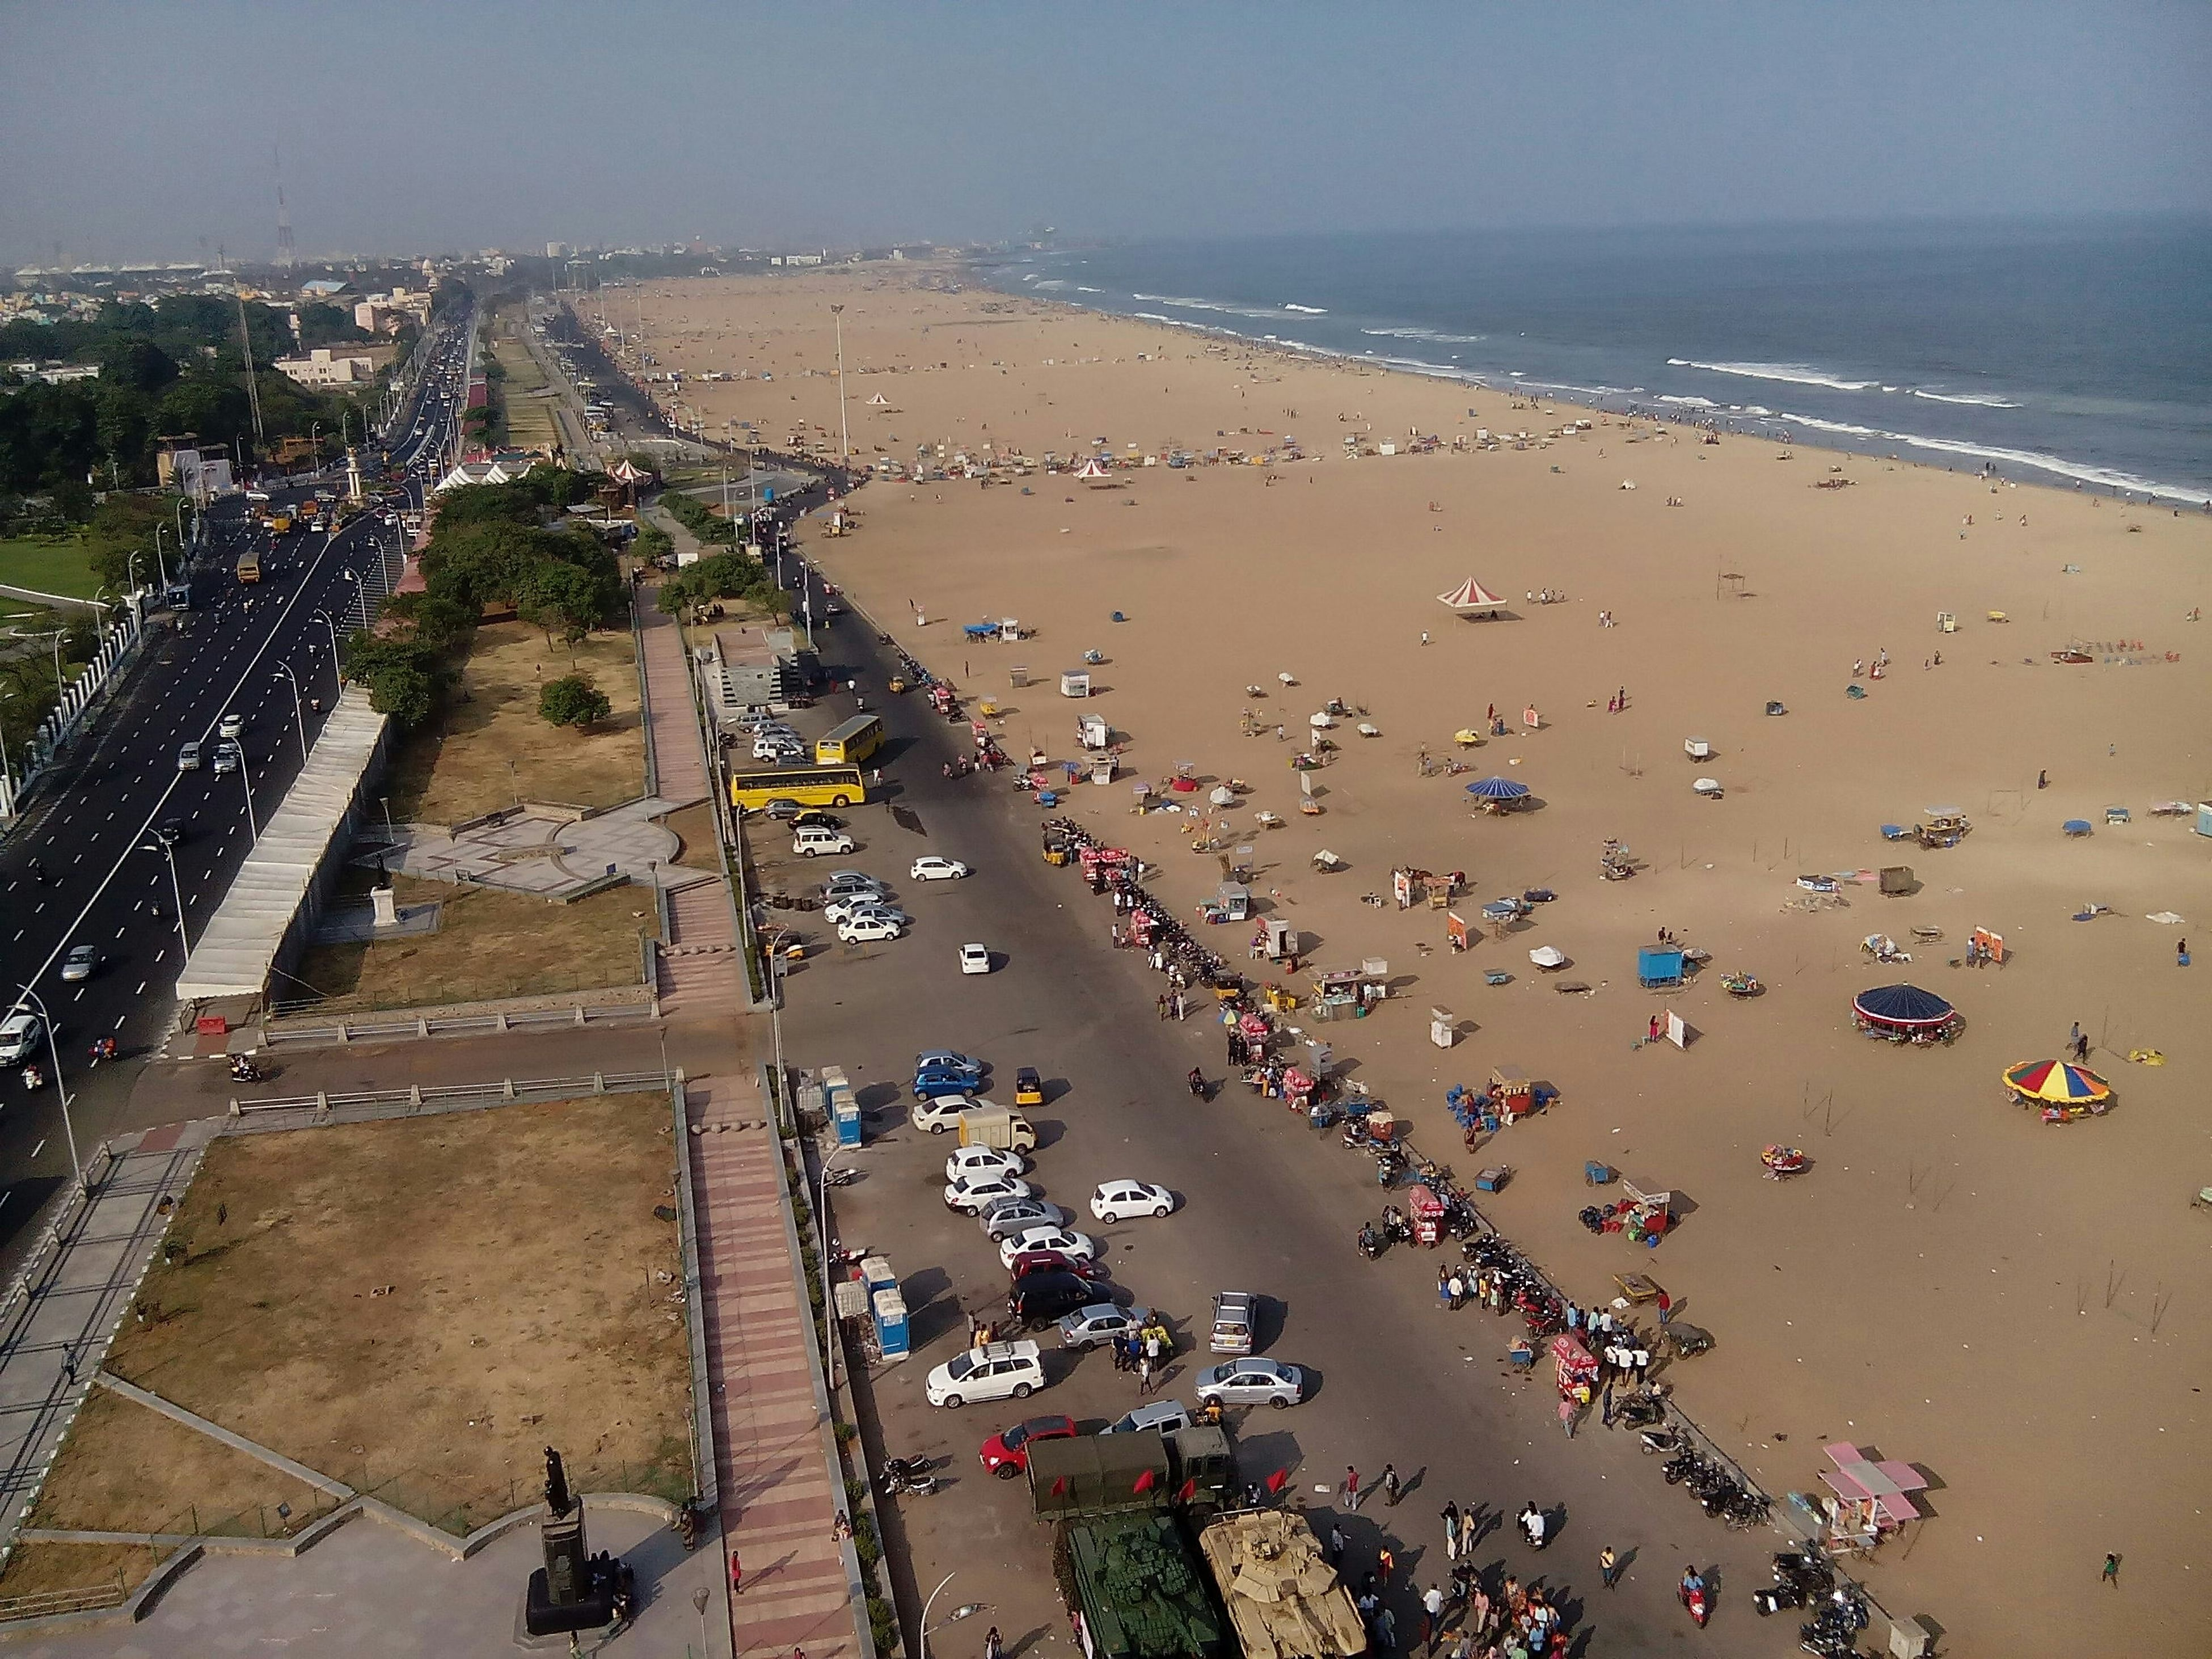 sea, beach, water, shore, horizon over water, sand, high angle view, vacations, nature, incidental people, large group of people, coastline, sky, beauty in nature, scenics, tranquility, clear sky, outdoors, day, sunlight